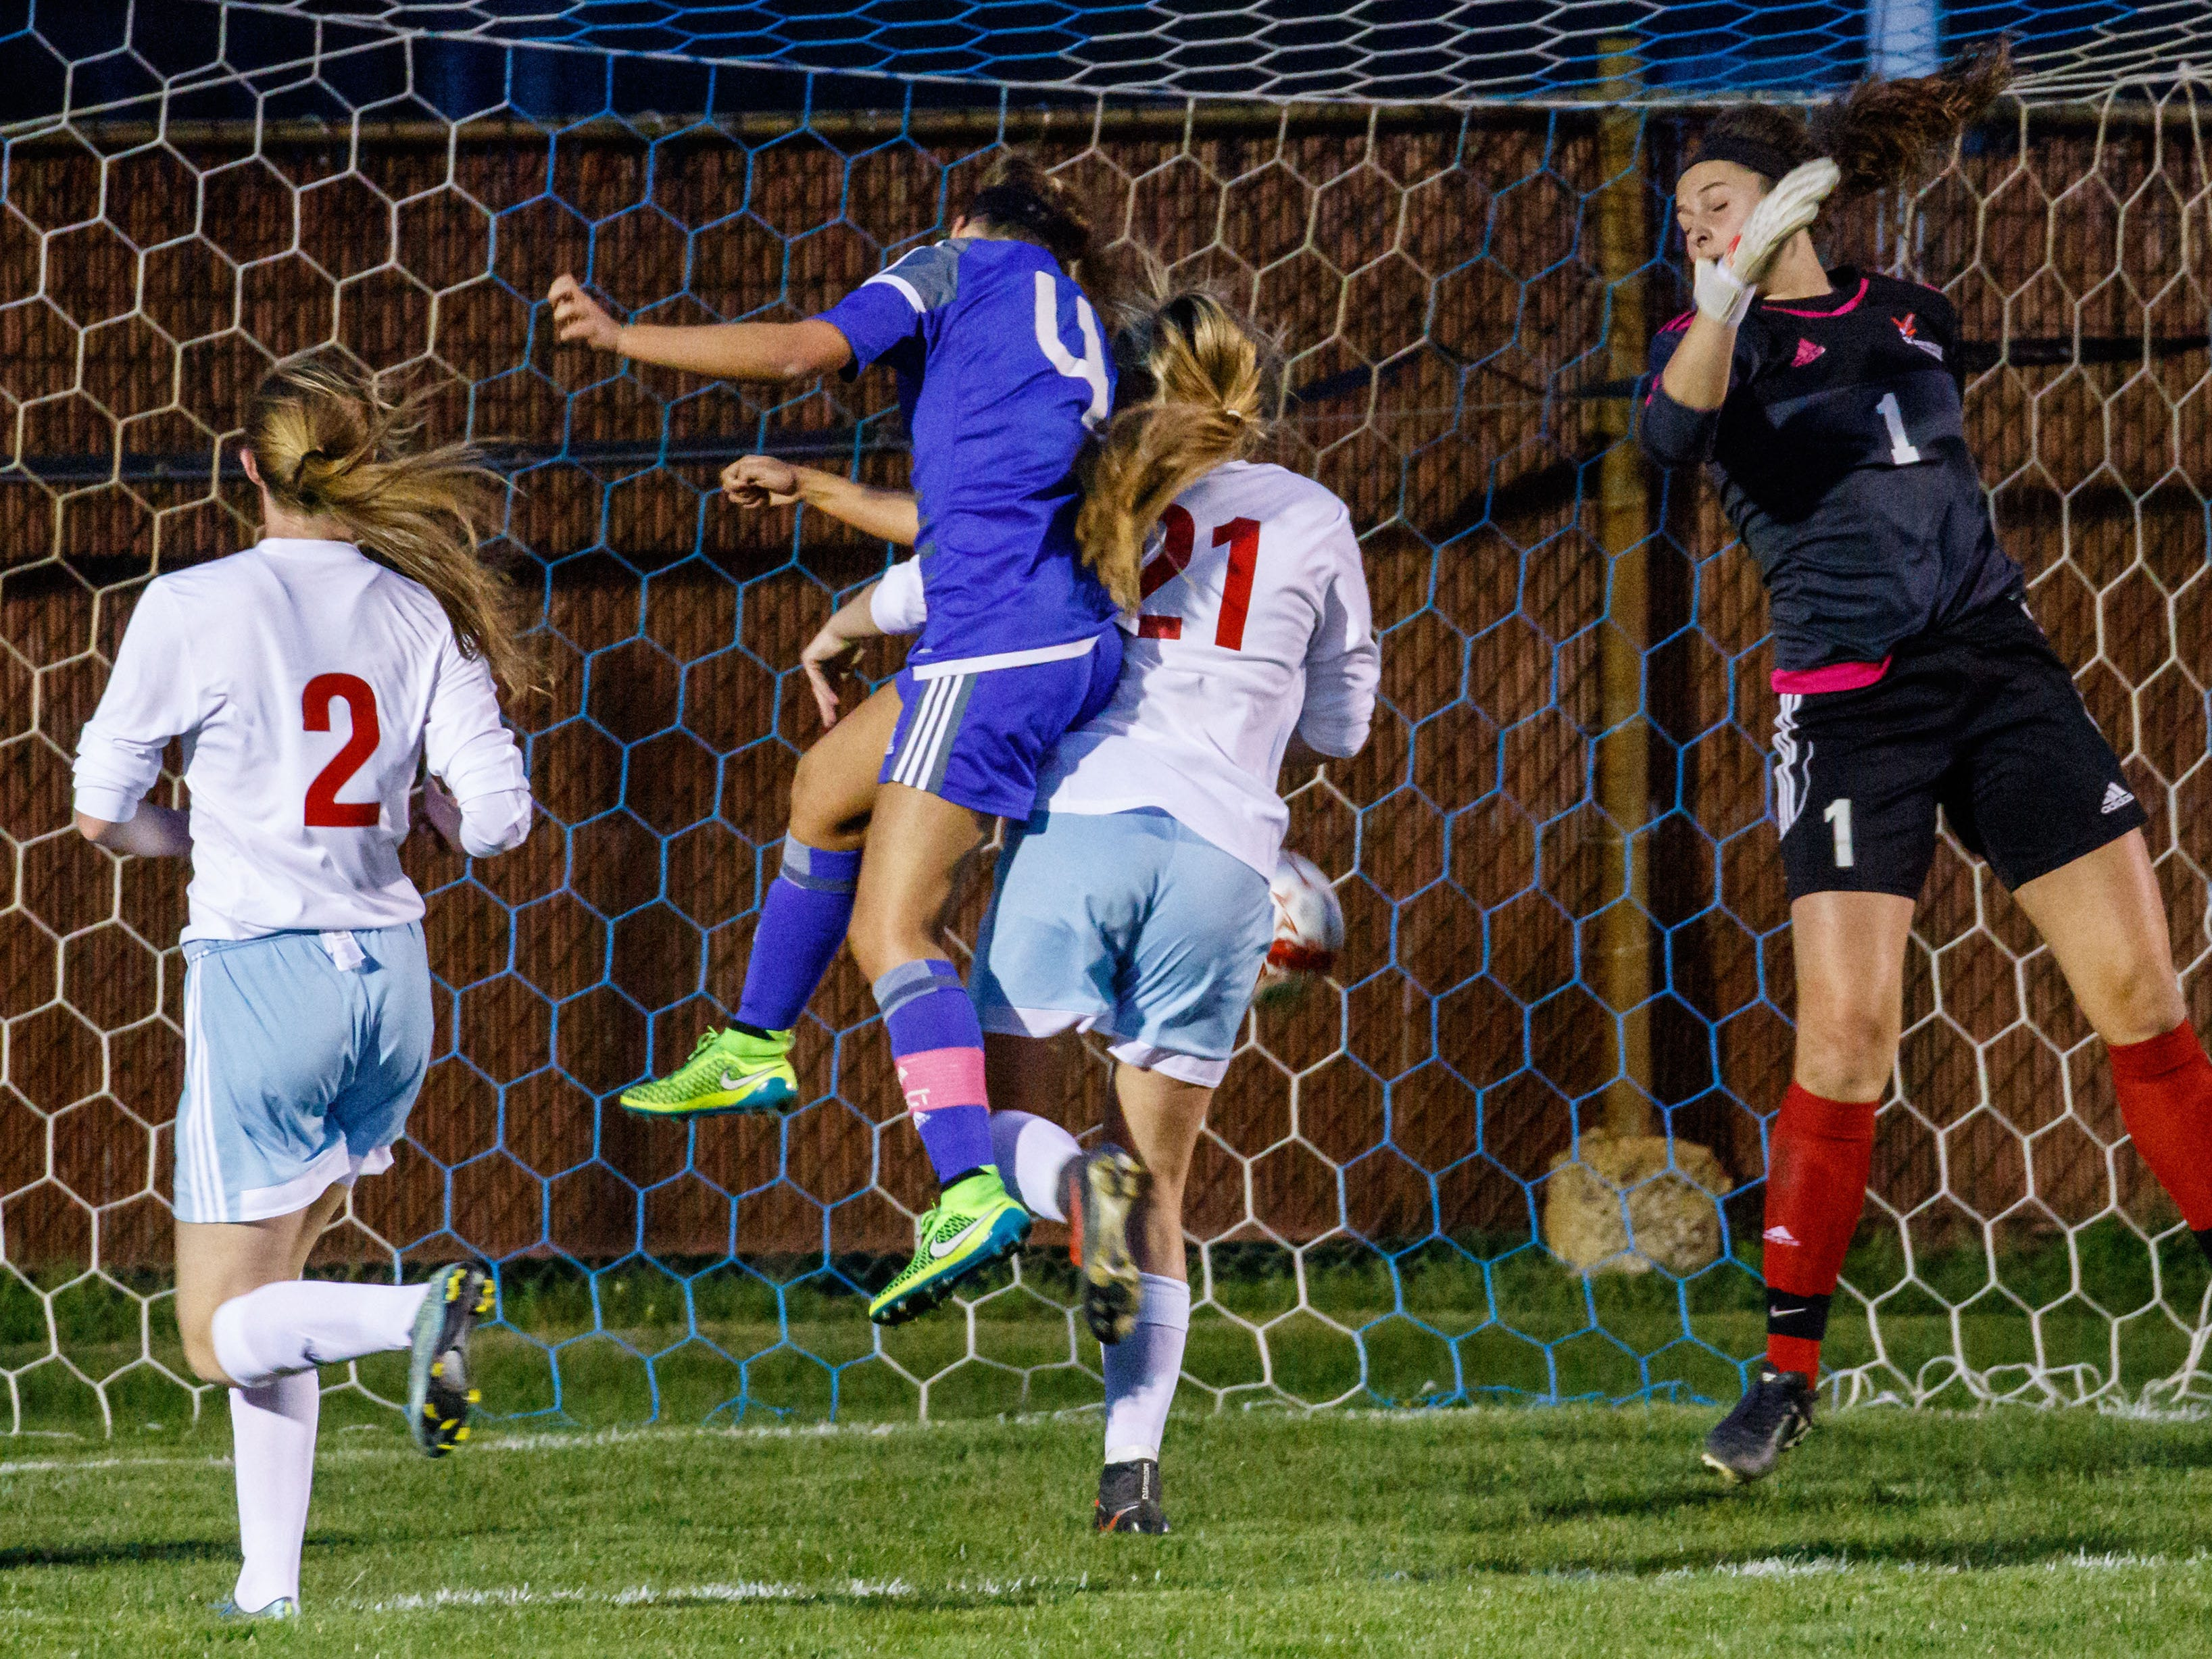 Waukesha West senior Dani Rhodes (4) scores with a header late in the match at Arrowhead on Tuesday, May 3, 2016 to give Waukesha a 1-0 victory.